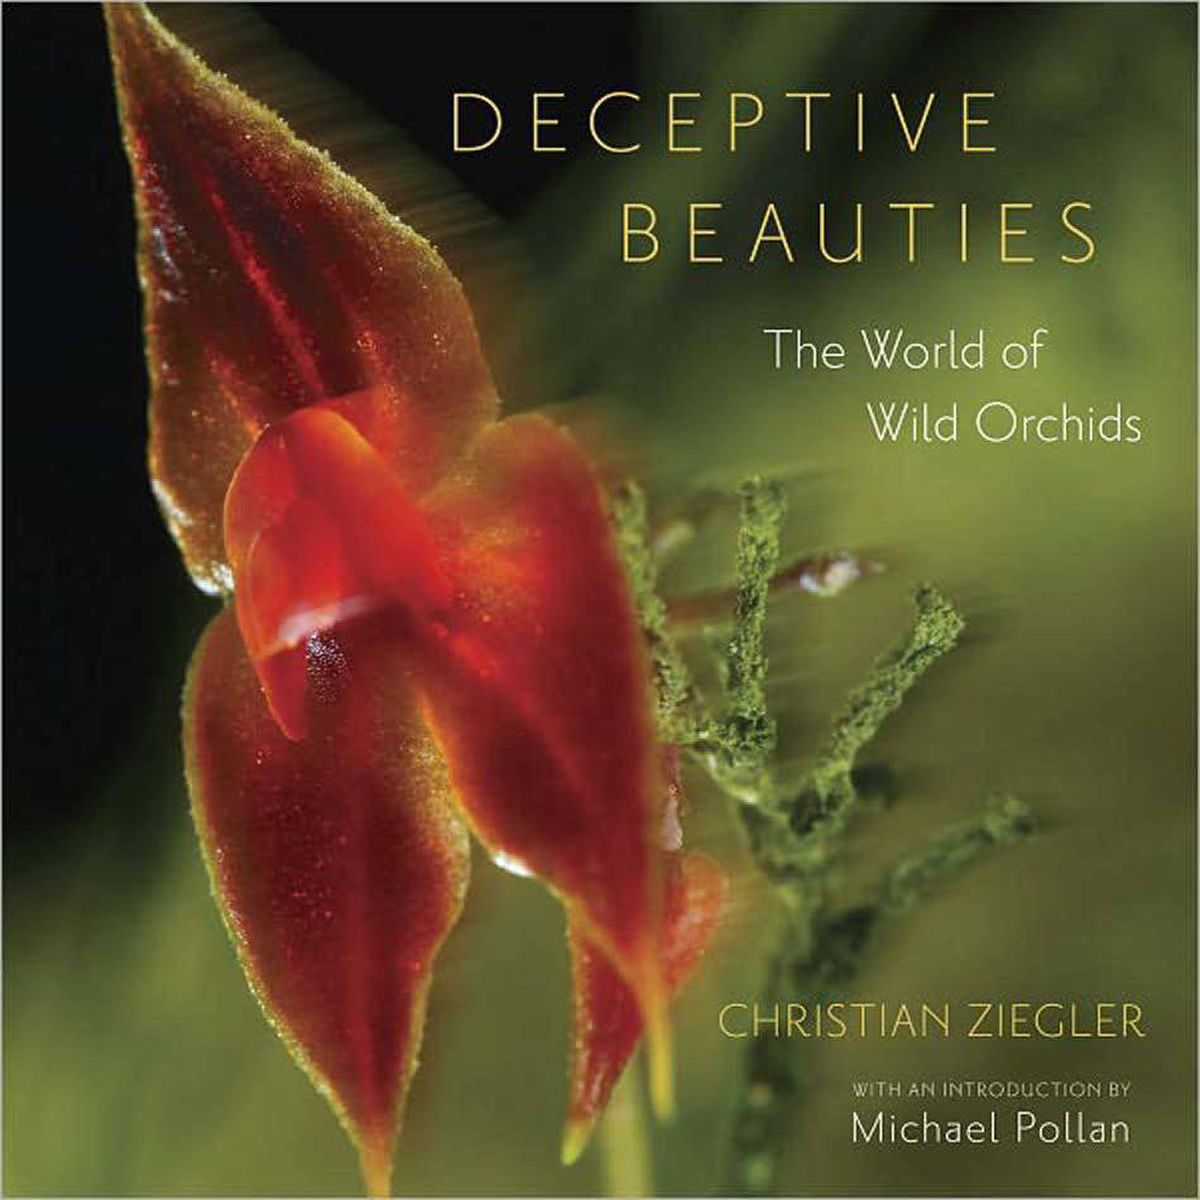 """DECEPTIVE BEAUTIES The World of Wild Orchids By Christian Ziegler (University of Chicago, 180 pages, $45) Its apparent fragility – and stunning beauty – belies the cut-throat survival stratagems of this street-fighting flower. The orchid, in its march from the top of the rain-forest canopy to Arctic circle austerity, has yet to find a habitat it can't tackle. Tiny seeds pair with ground fungi to provide nutrients for young flowers to sprout broad petals that serve as """"landing strips"""" for pollinating insects."""